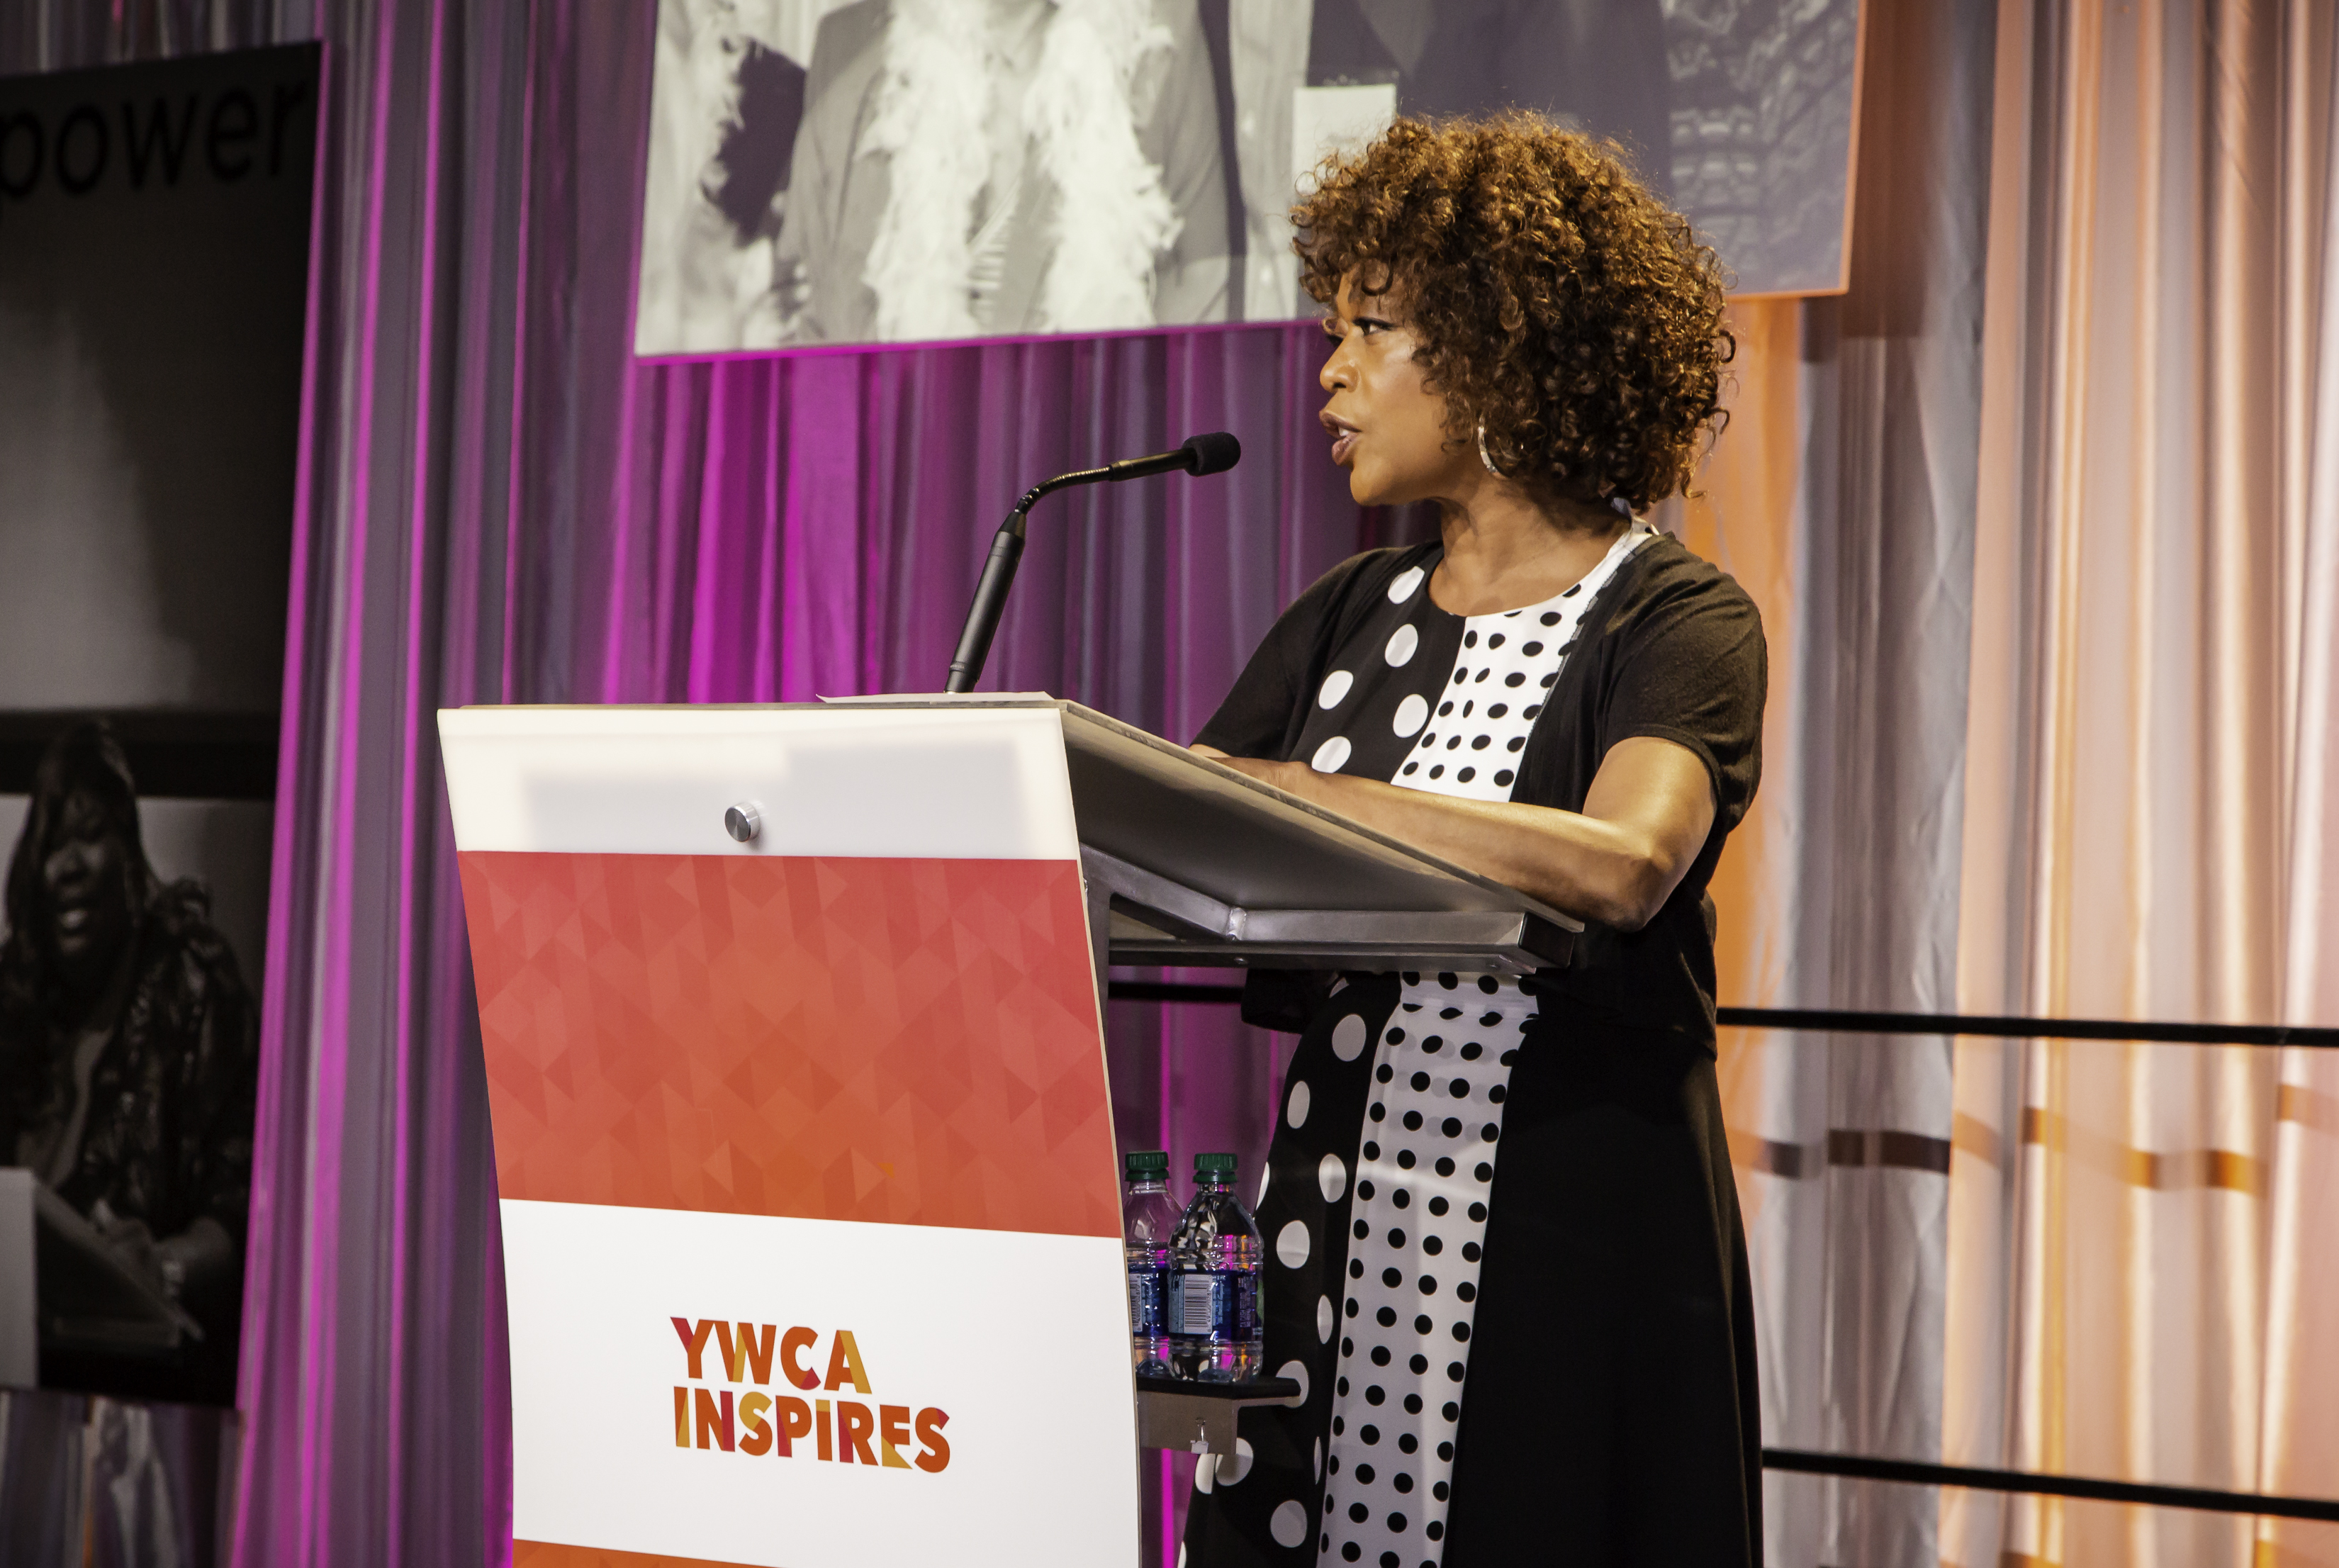 Actress and activist Alfre Woodard brought her star power to Seattle as the keynote speaker for the YWCA Inspire Luncheon. Photo courtesy of YWCA.<p></p>